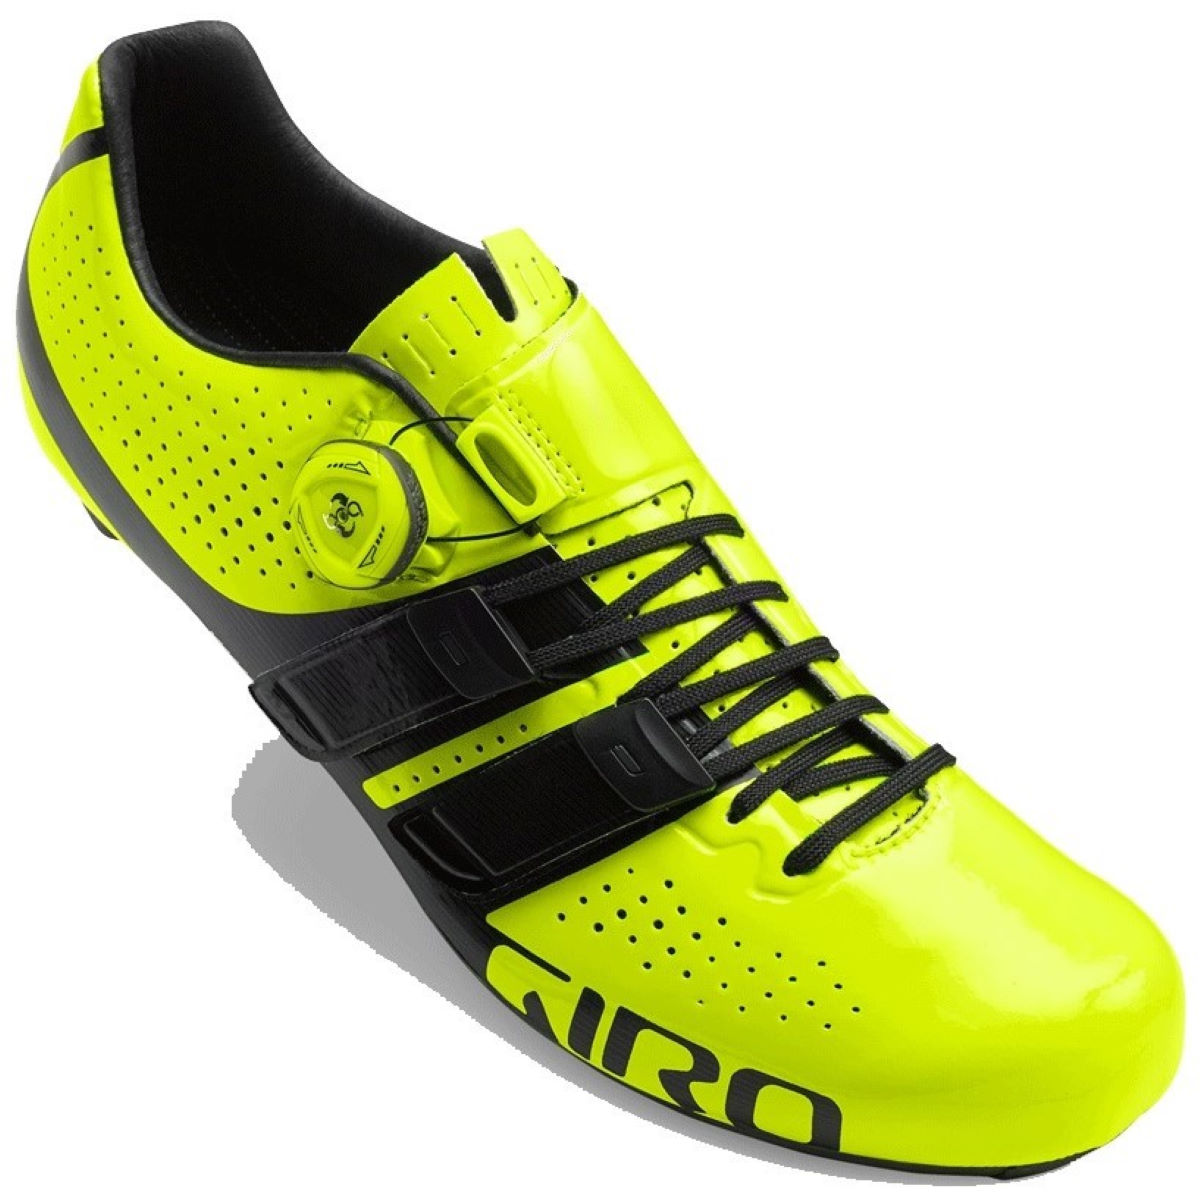 Giro Factor Techlace Road Shoes - 45 Yellow/Black | Road Shoes